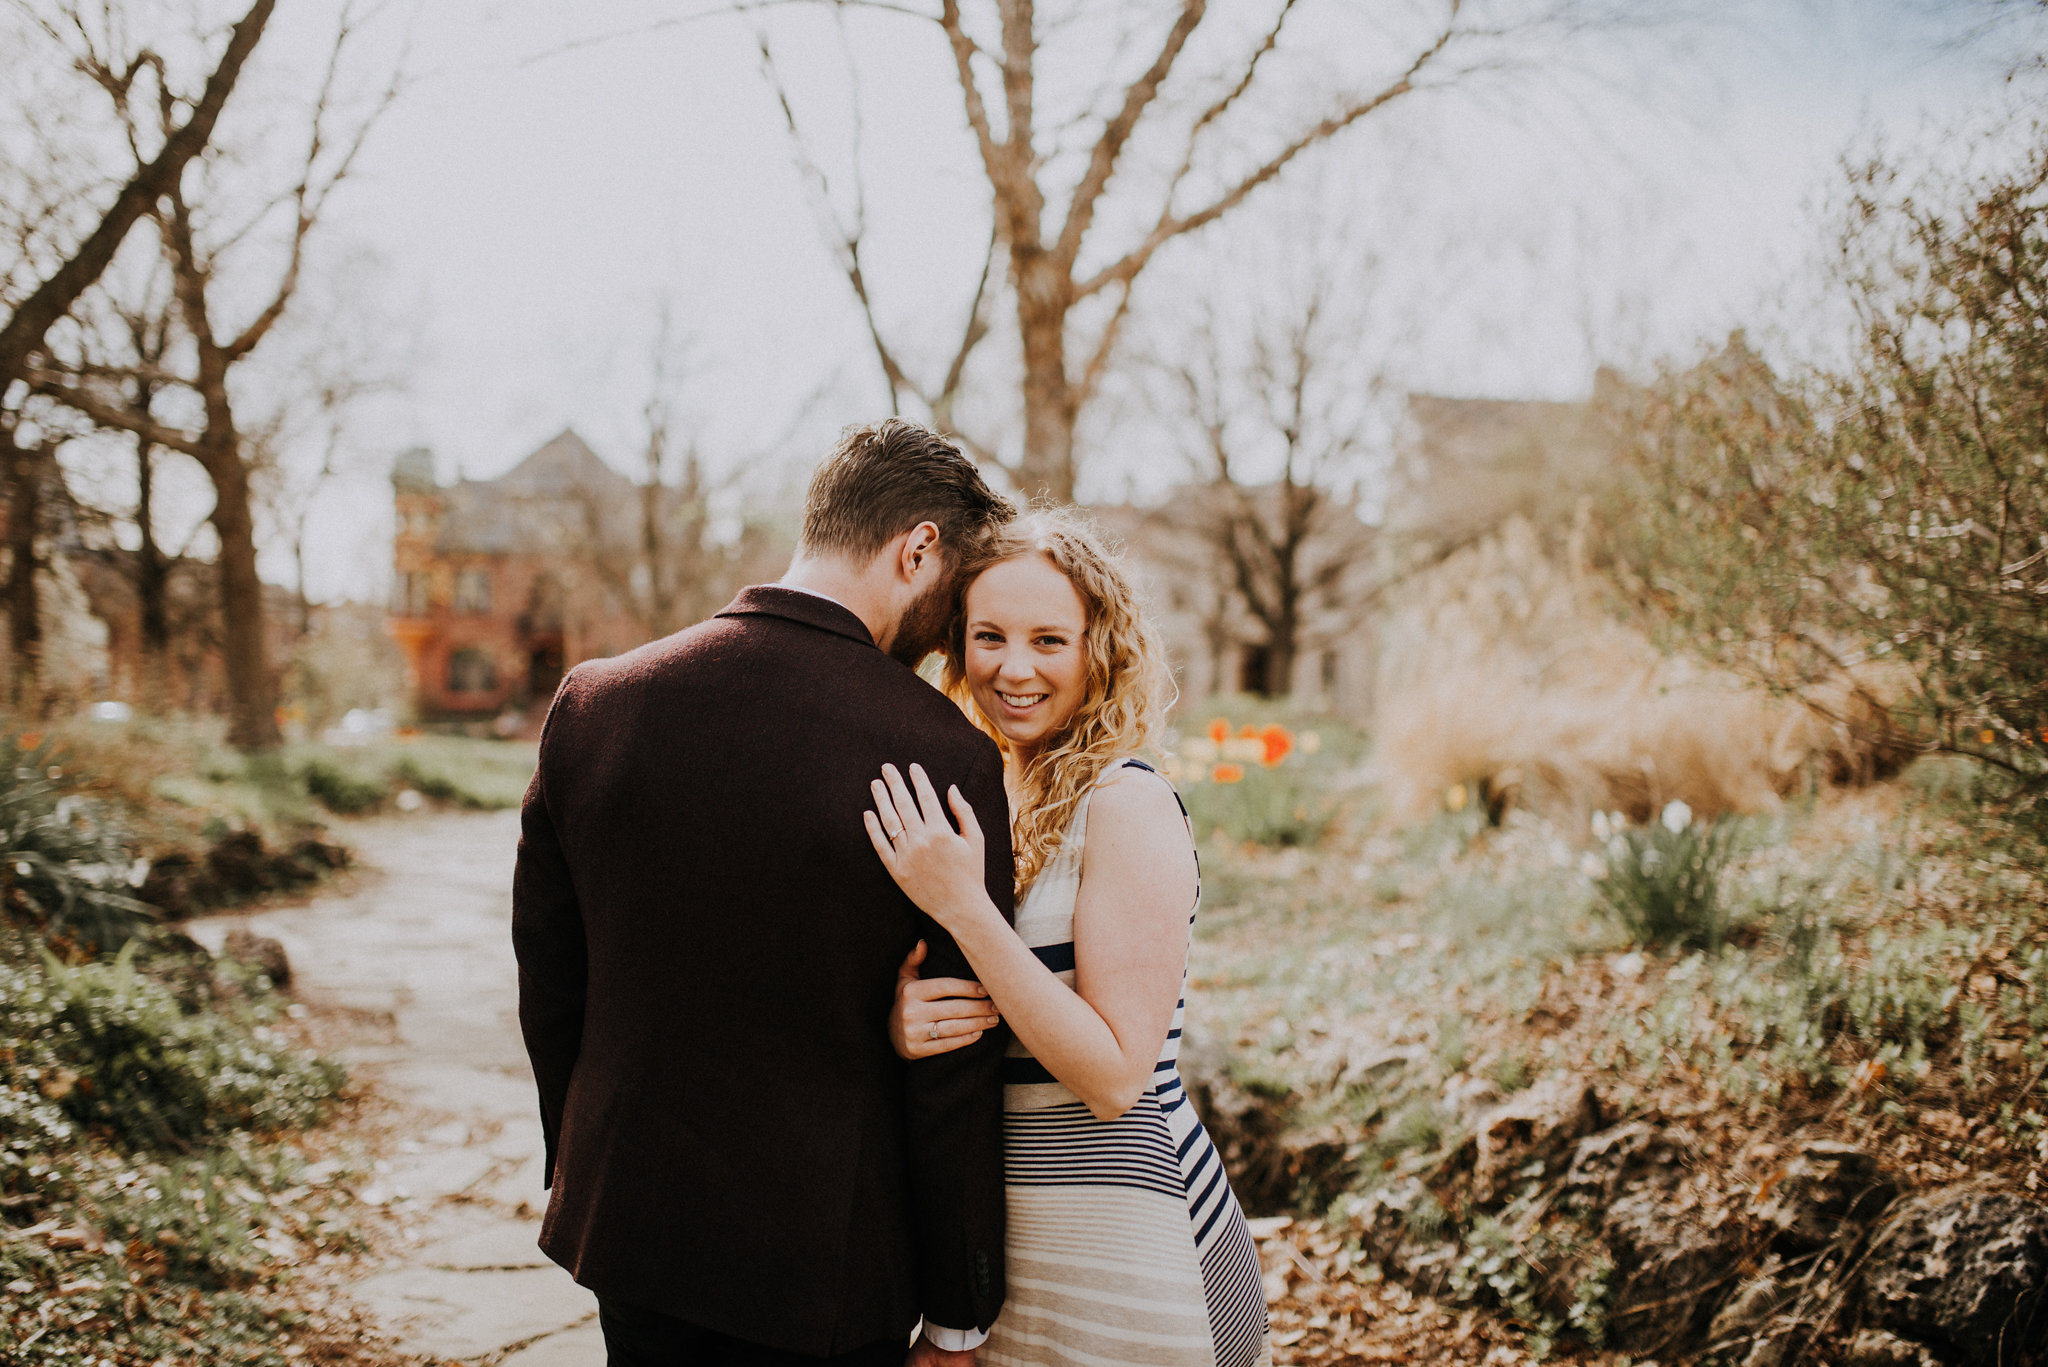 The Marions {blog post coming soon!}